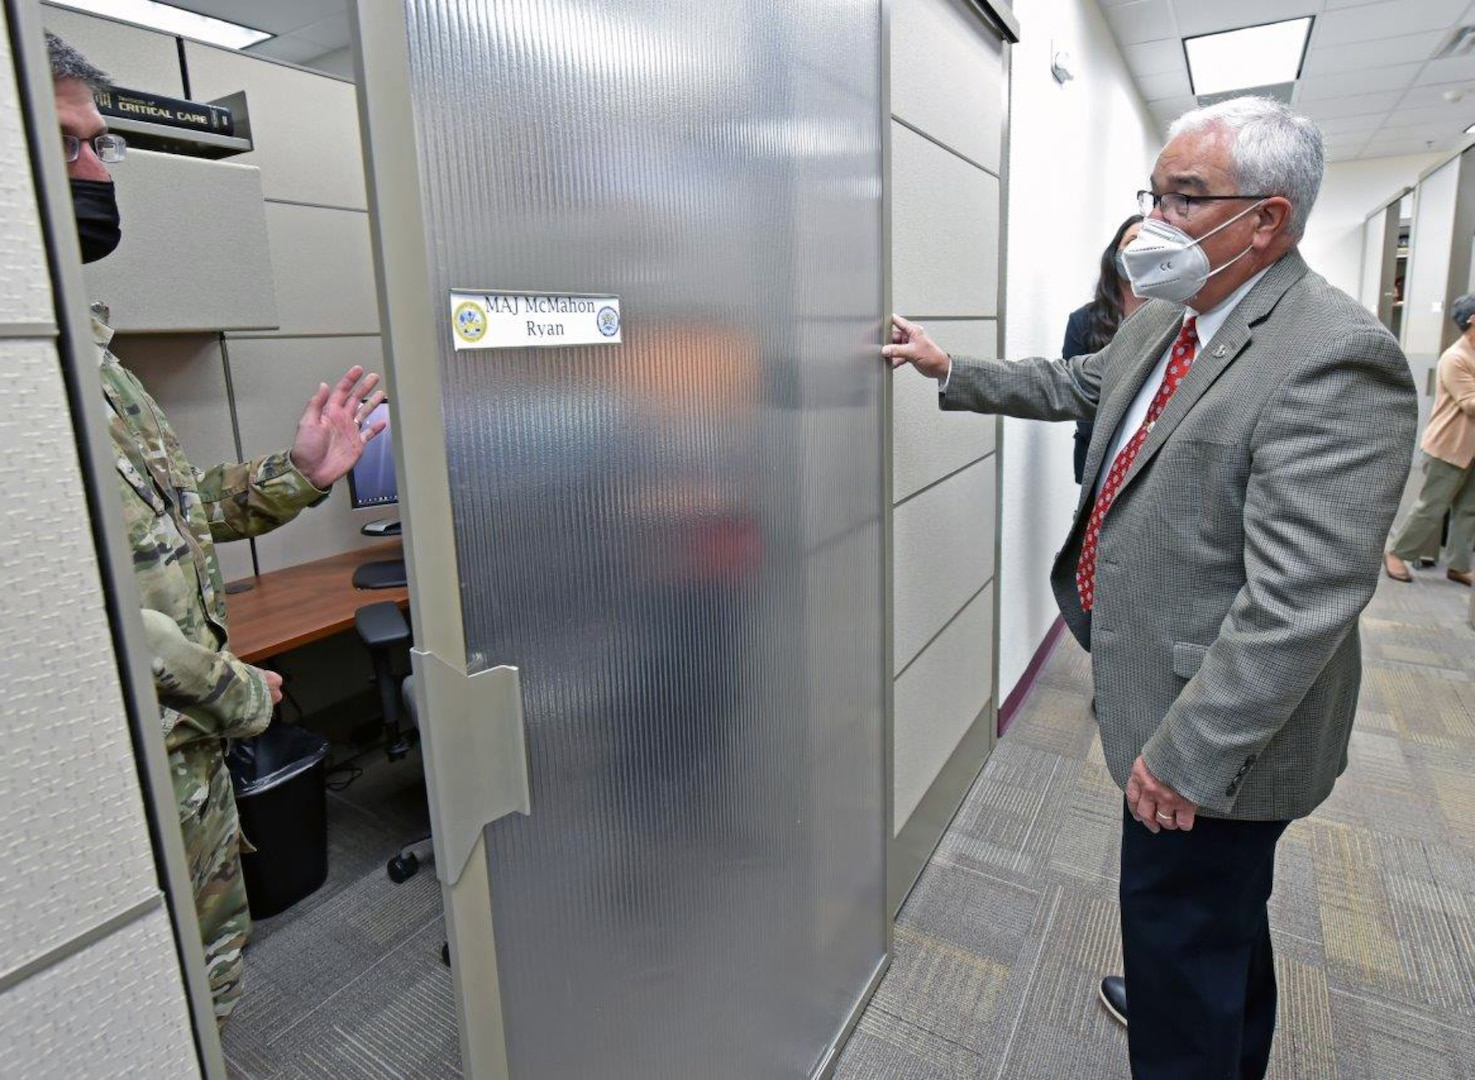 Maj. Ryan McMahon, professor of surgery and Director of Basic Life Support, demonstrates the sliding door of his new office partition to J.M. Harmon III, Deputy to the U.S. Army Medical Center of Excellence commanding general.